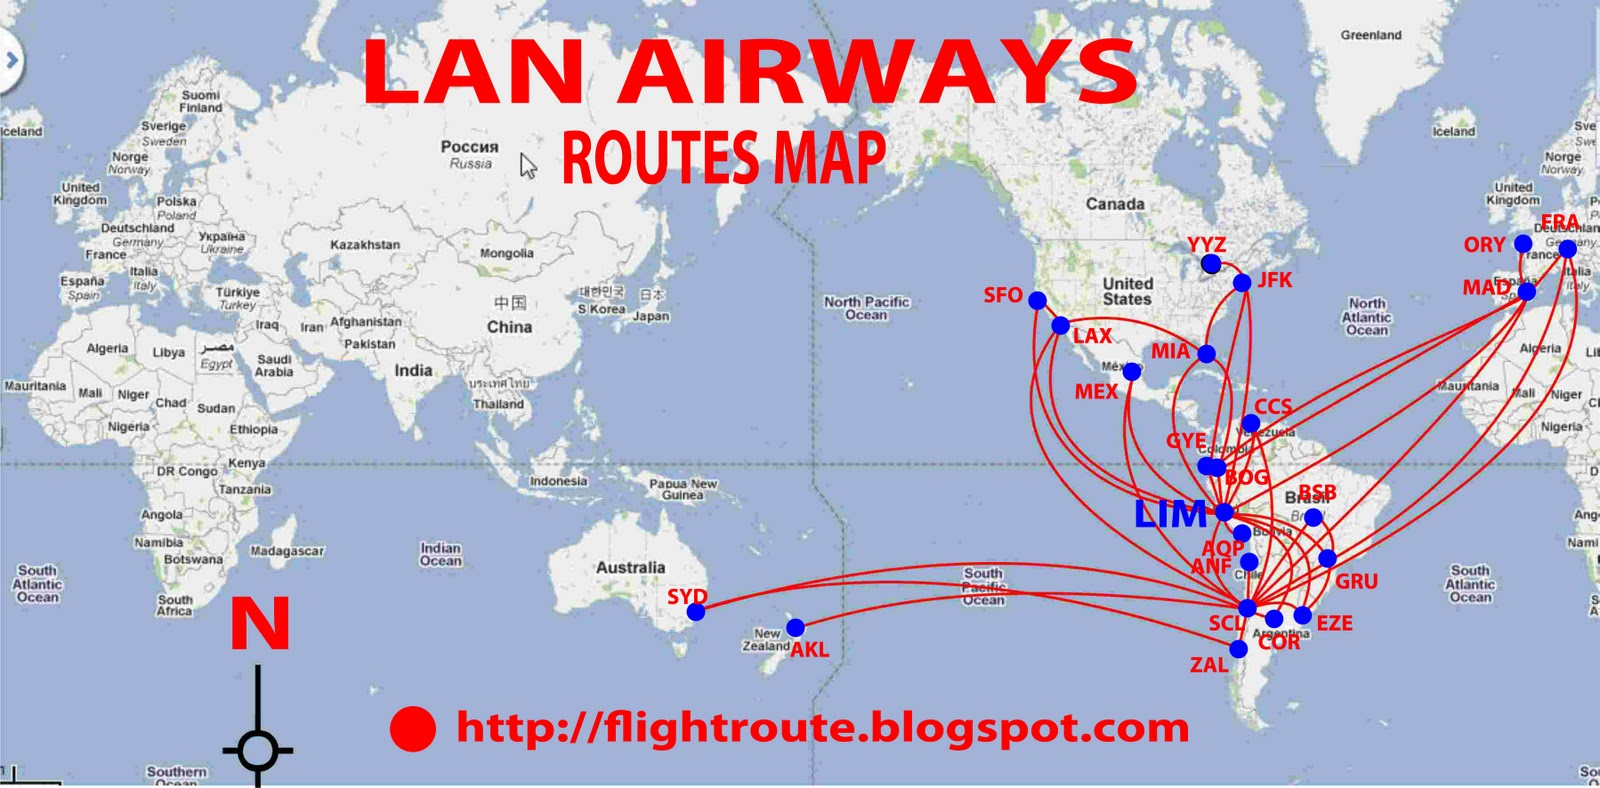 Routes map 2011 lan airlines routes map sciox Images